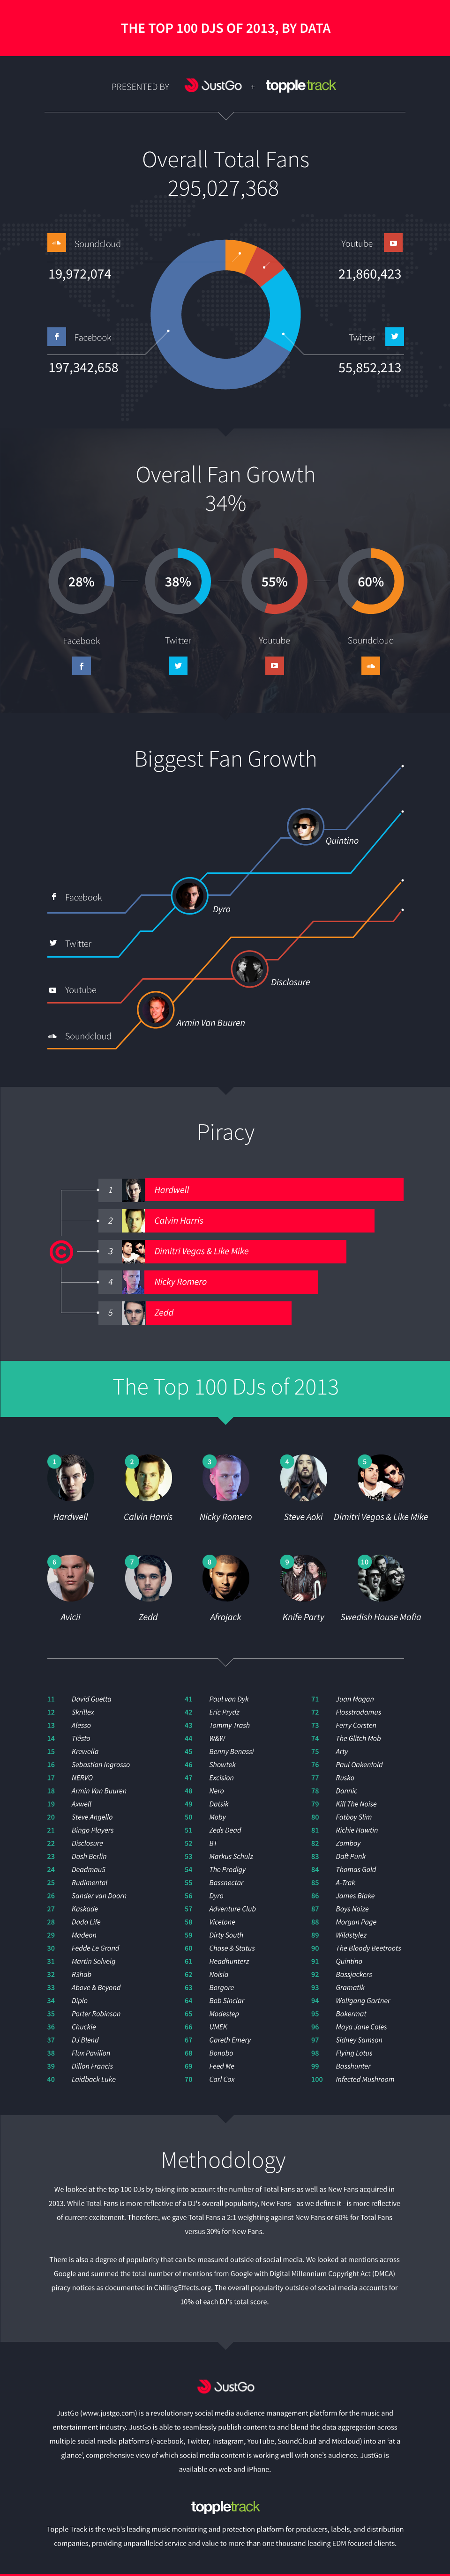 top_100_djs_2013_infographic_